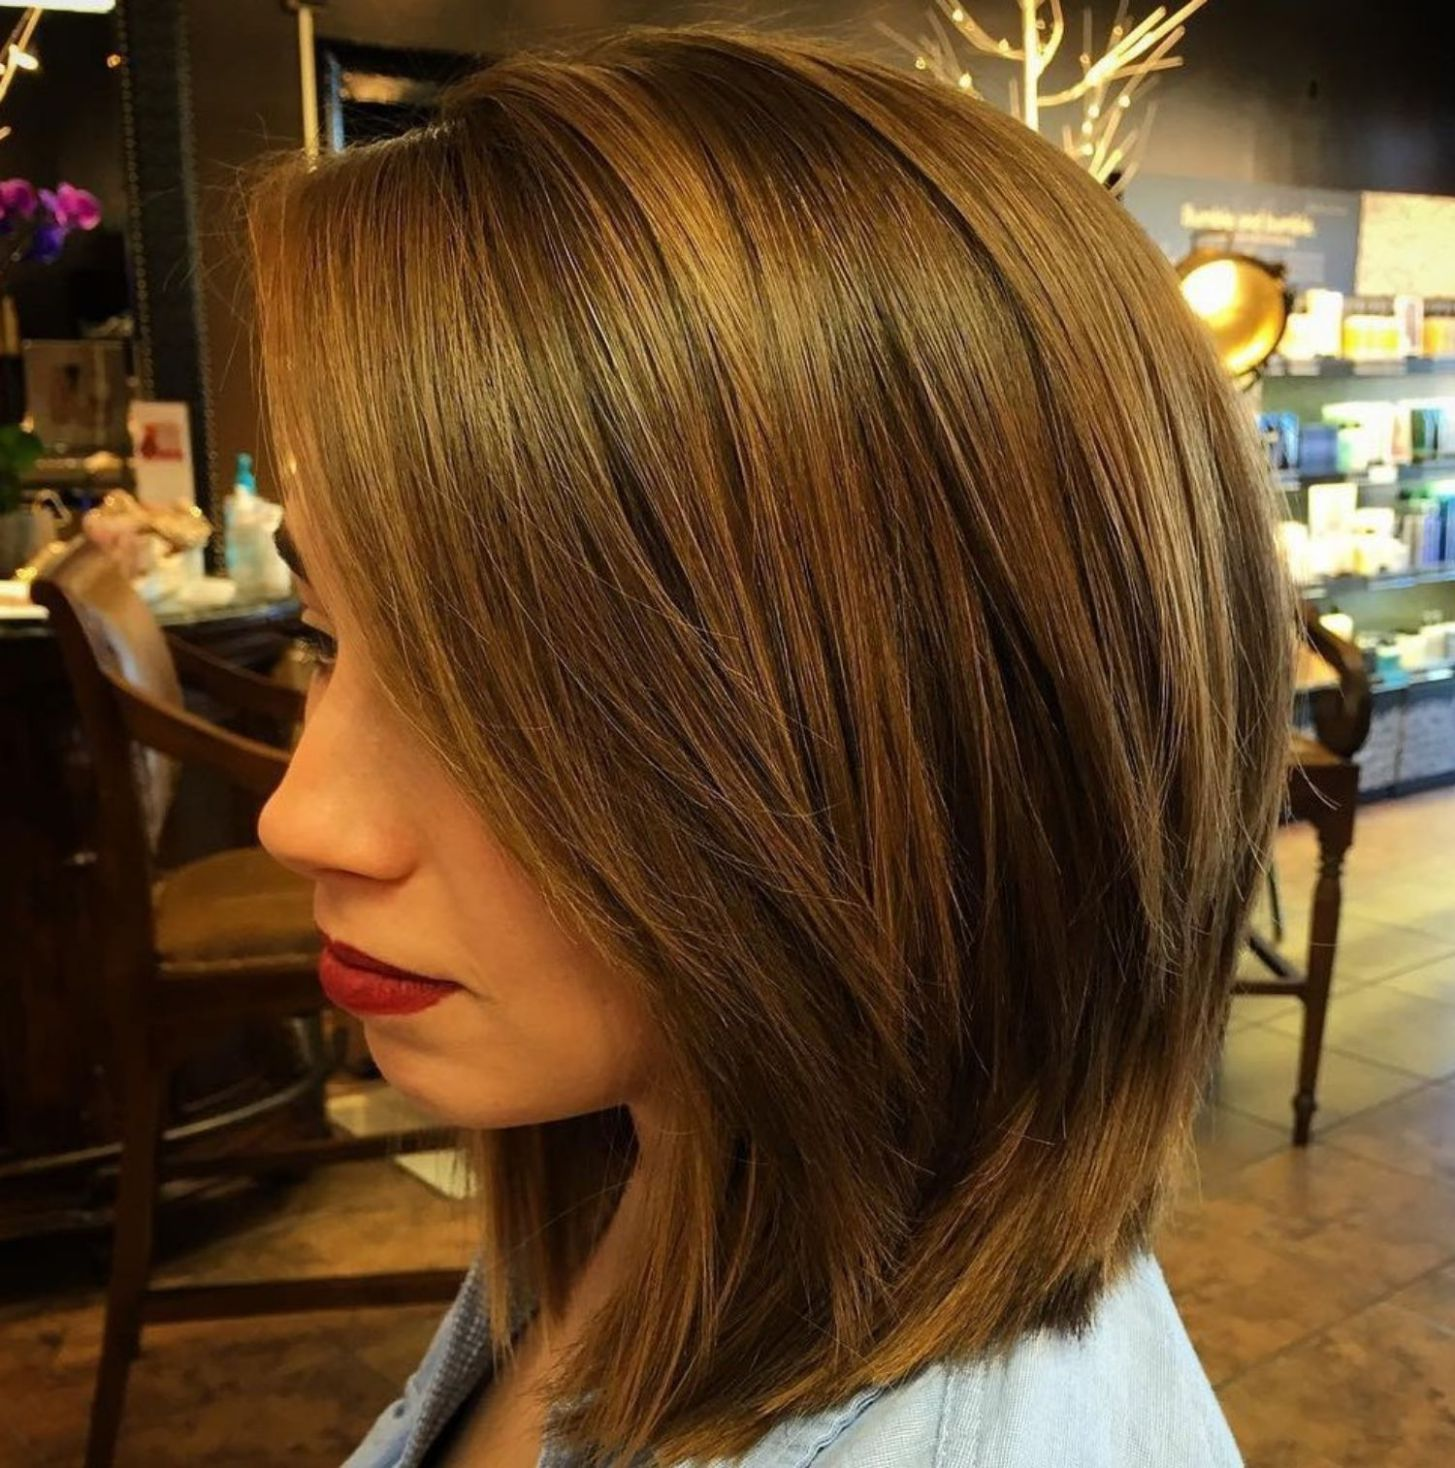 60 Trendy Layered Bob Hairstyles You Can't Miss